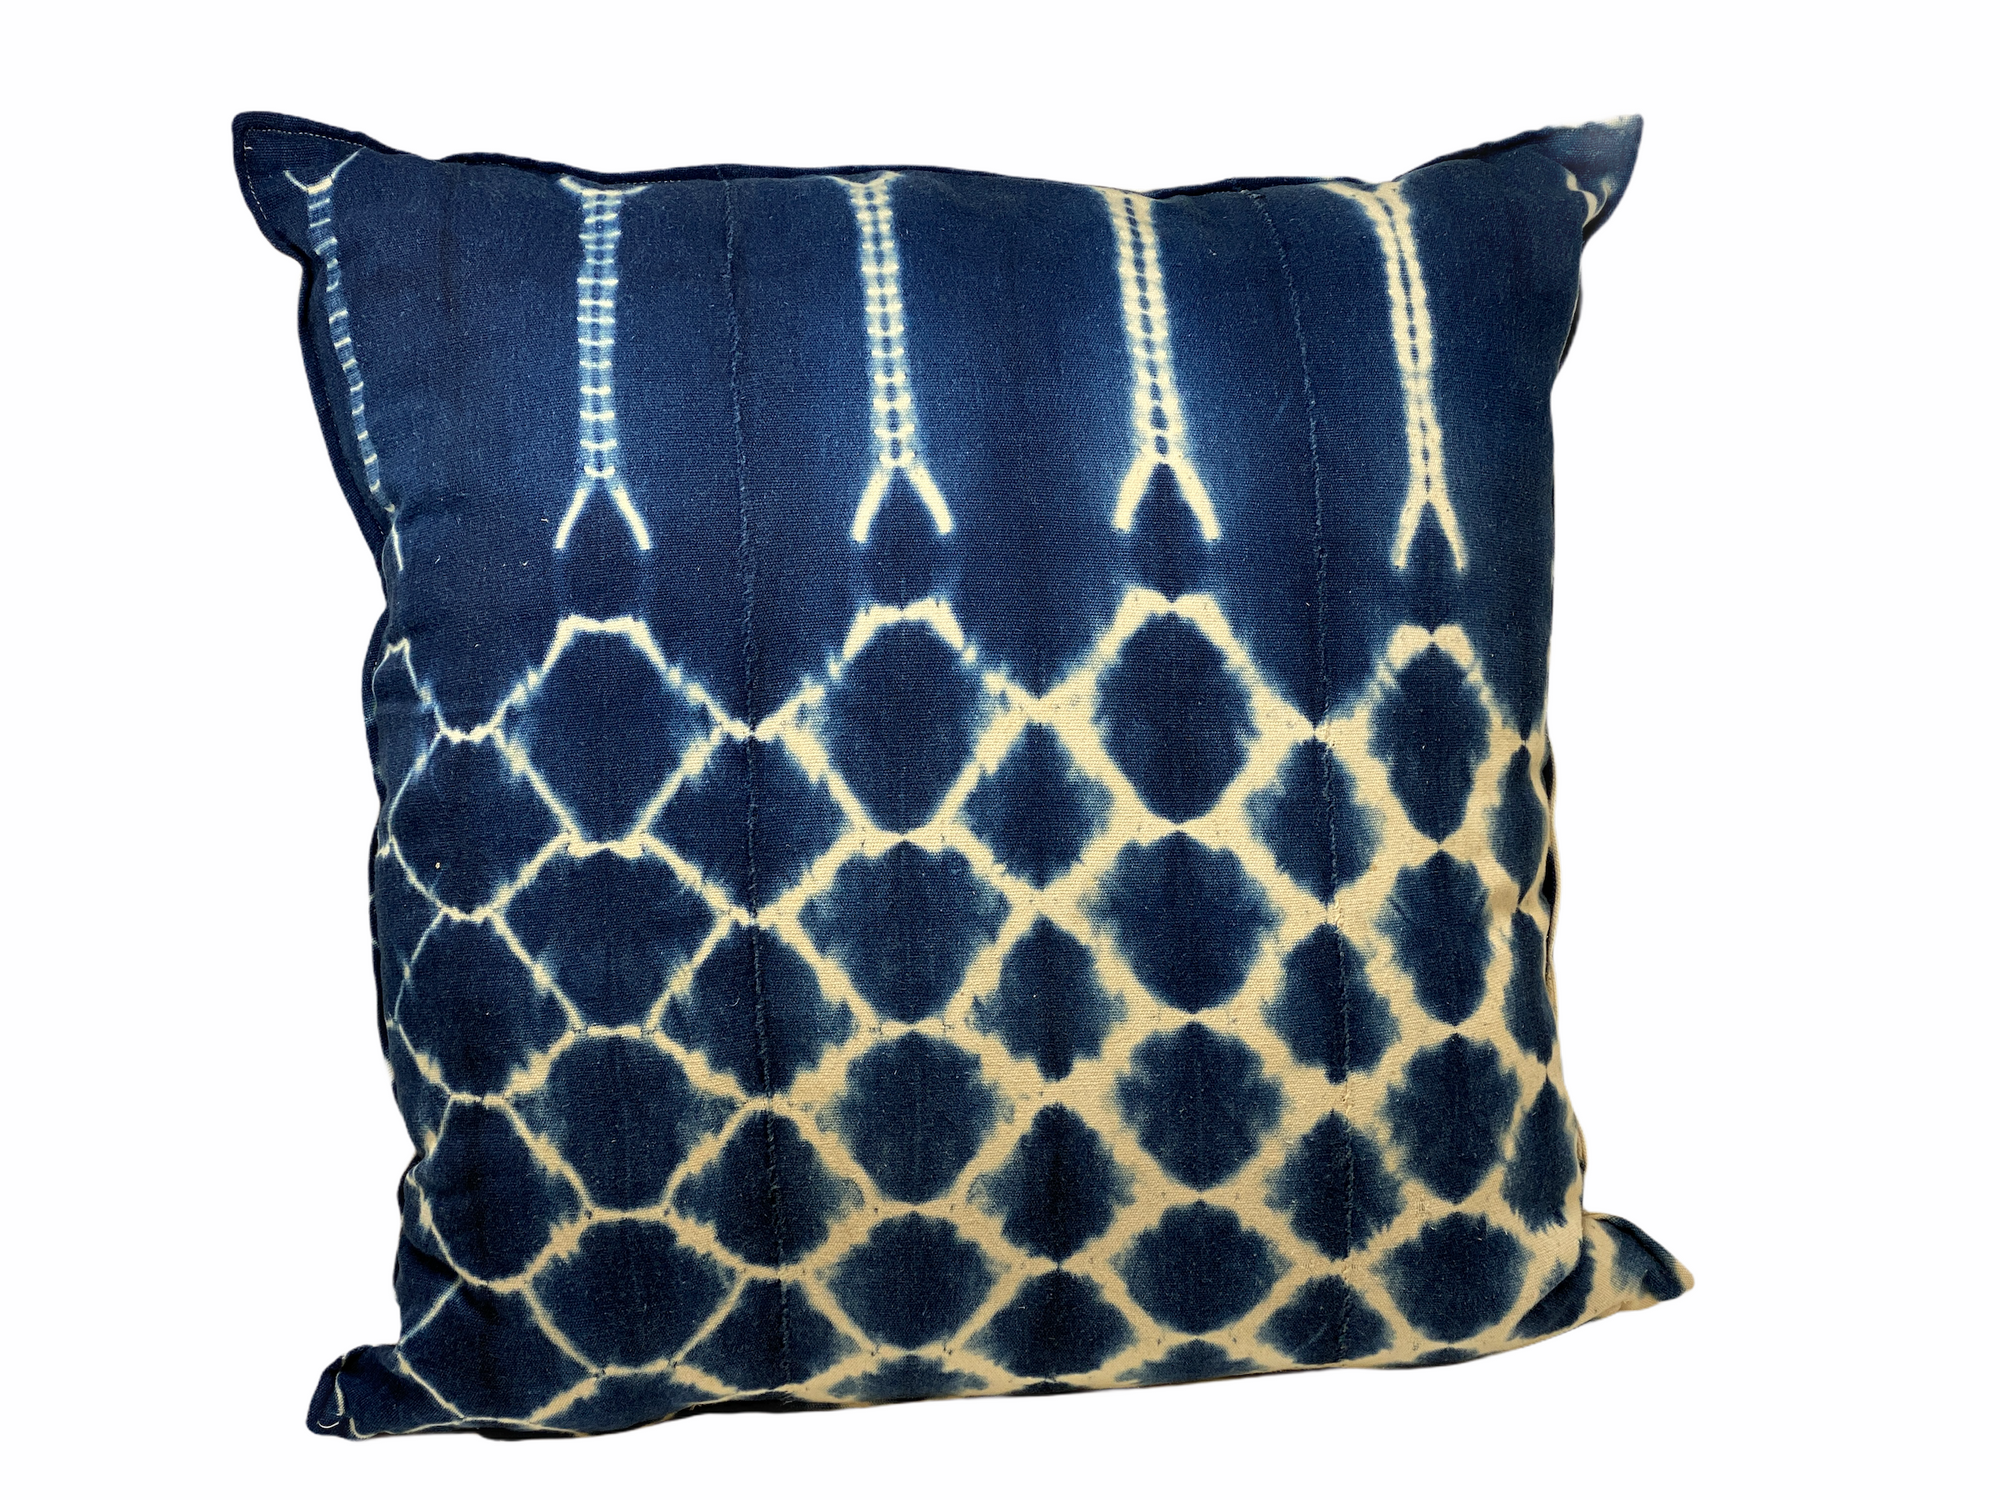 Indigo/Baule Cloth Cushions 60x60cm